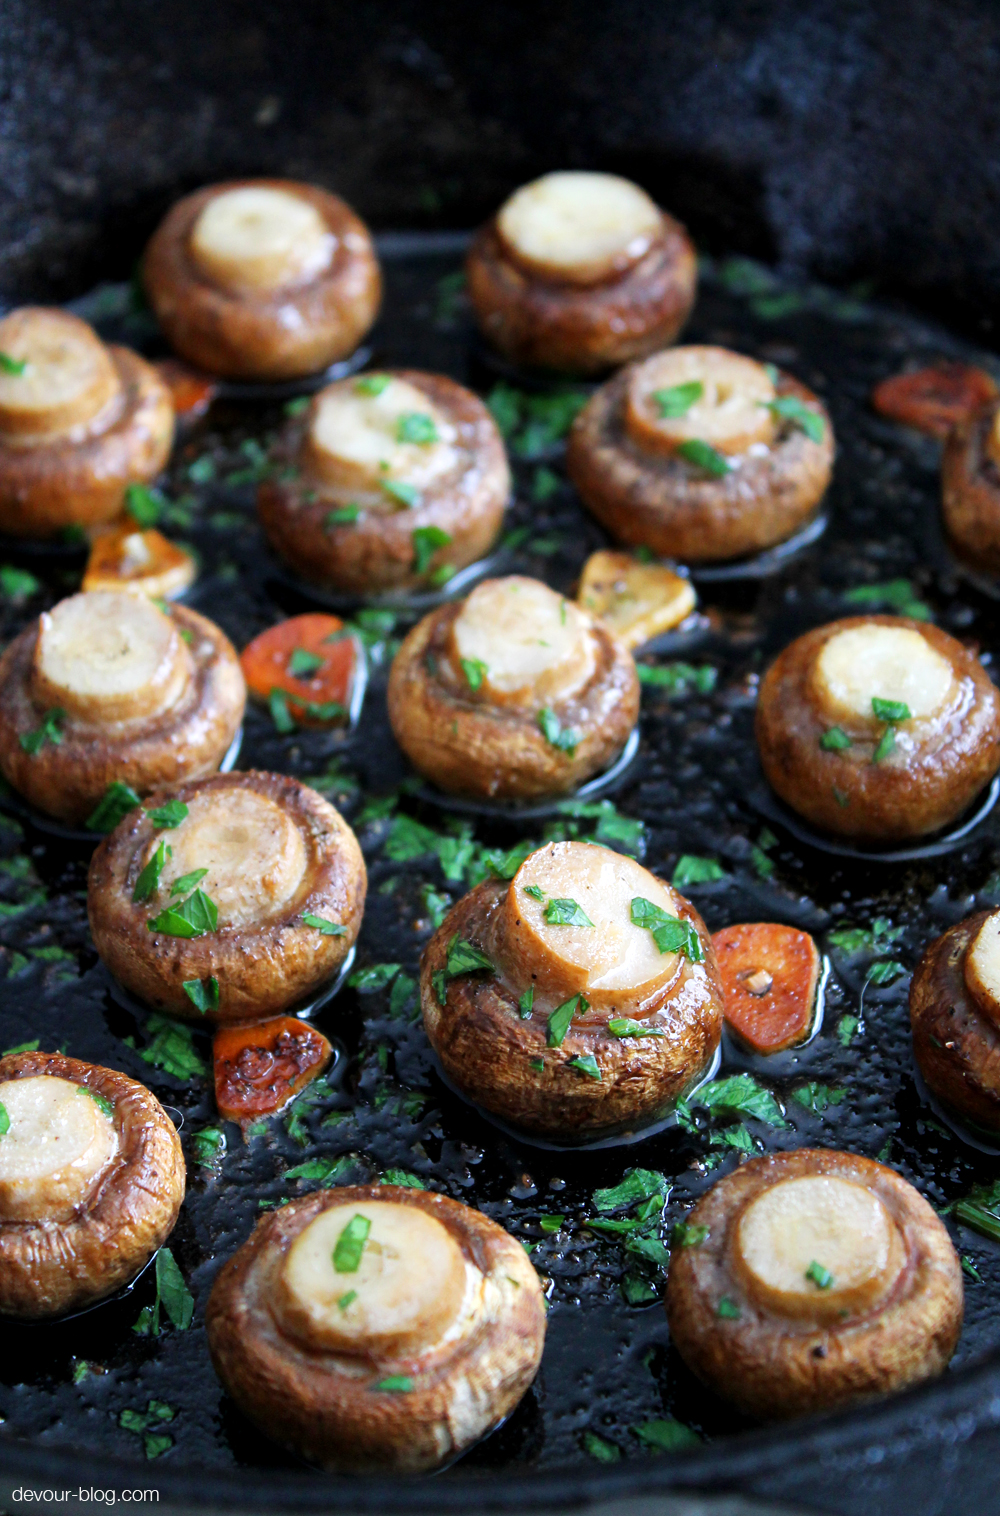 Baked Mushrooms with butter, garlic and parsley. devour-blog.com